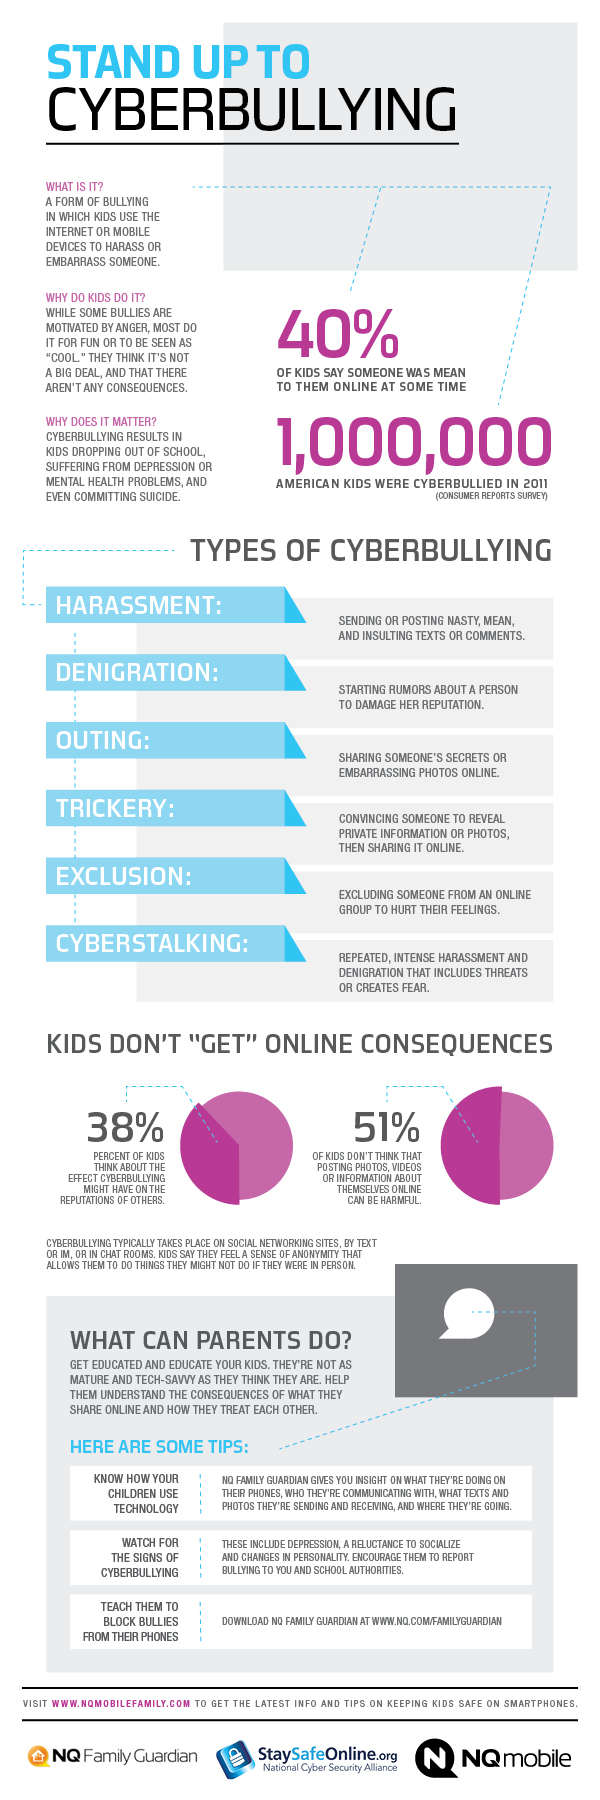 Cyberbullying Trends and Facts